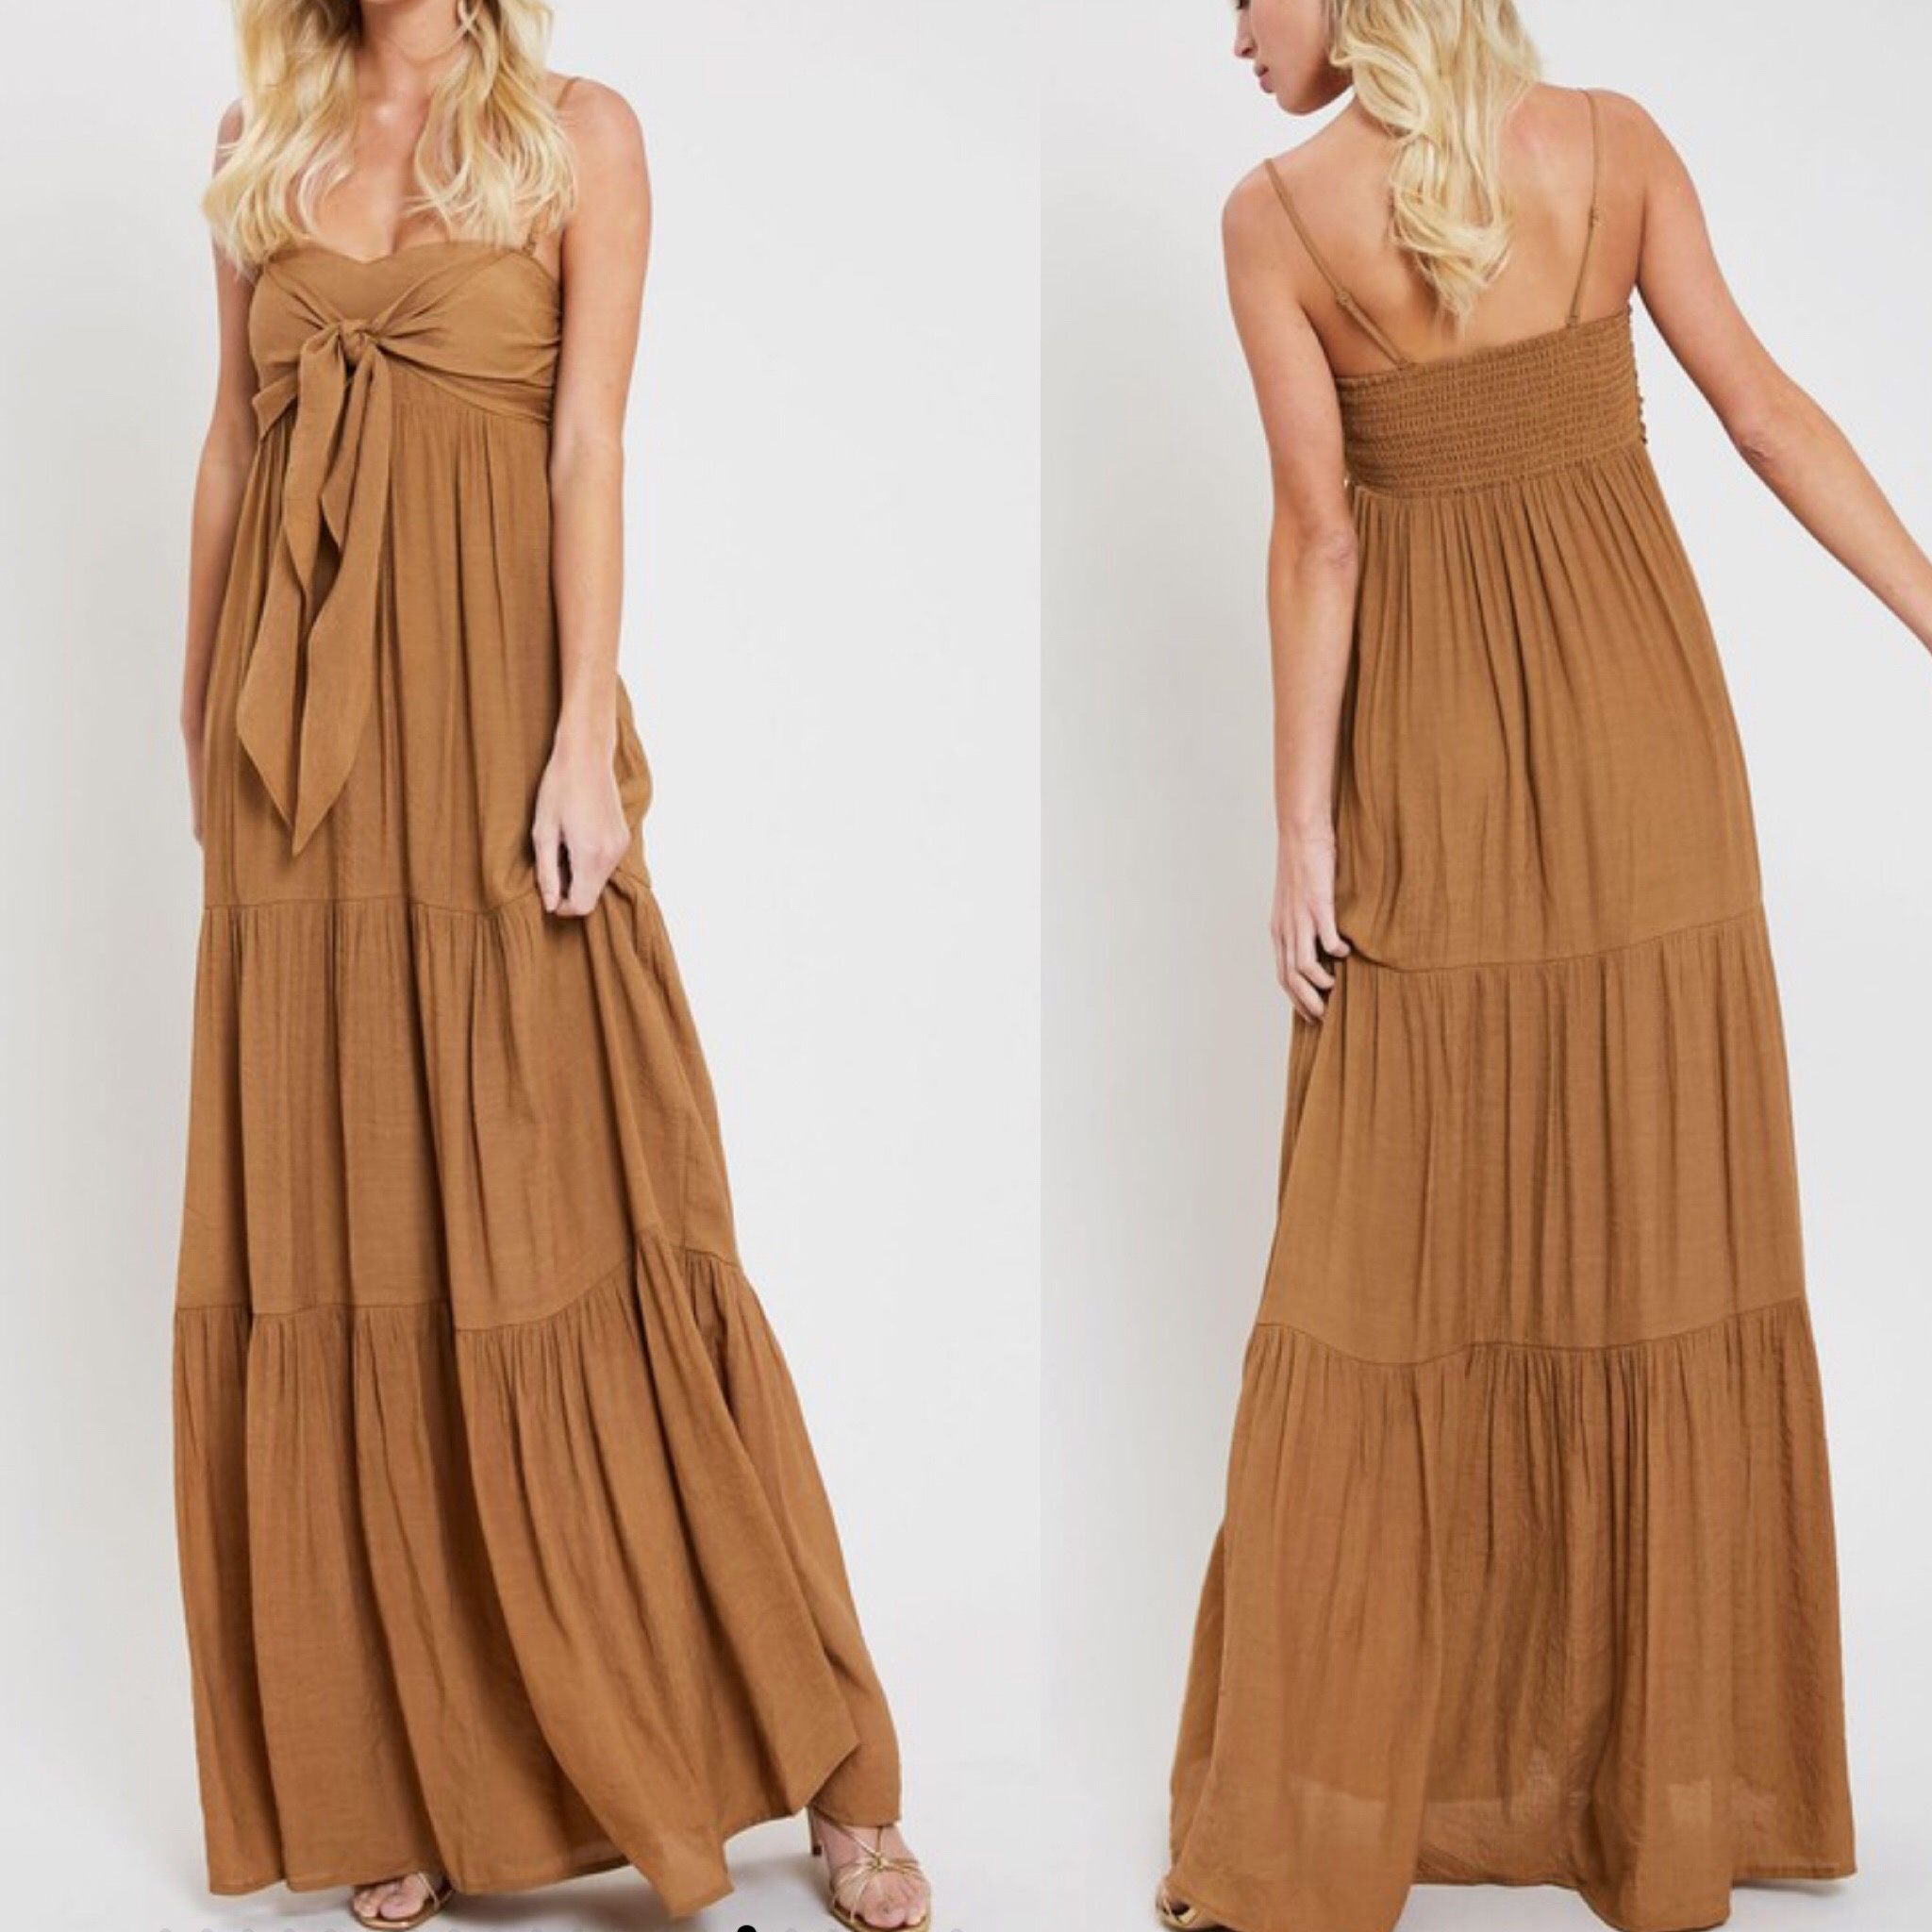 Bow Detail Maxi Dress - Gucci